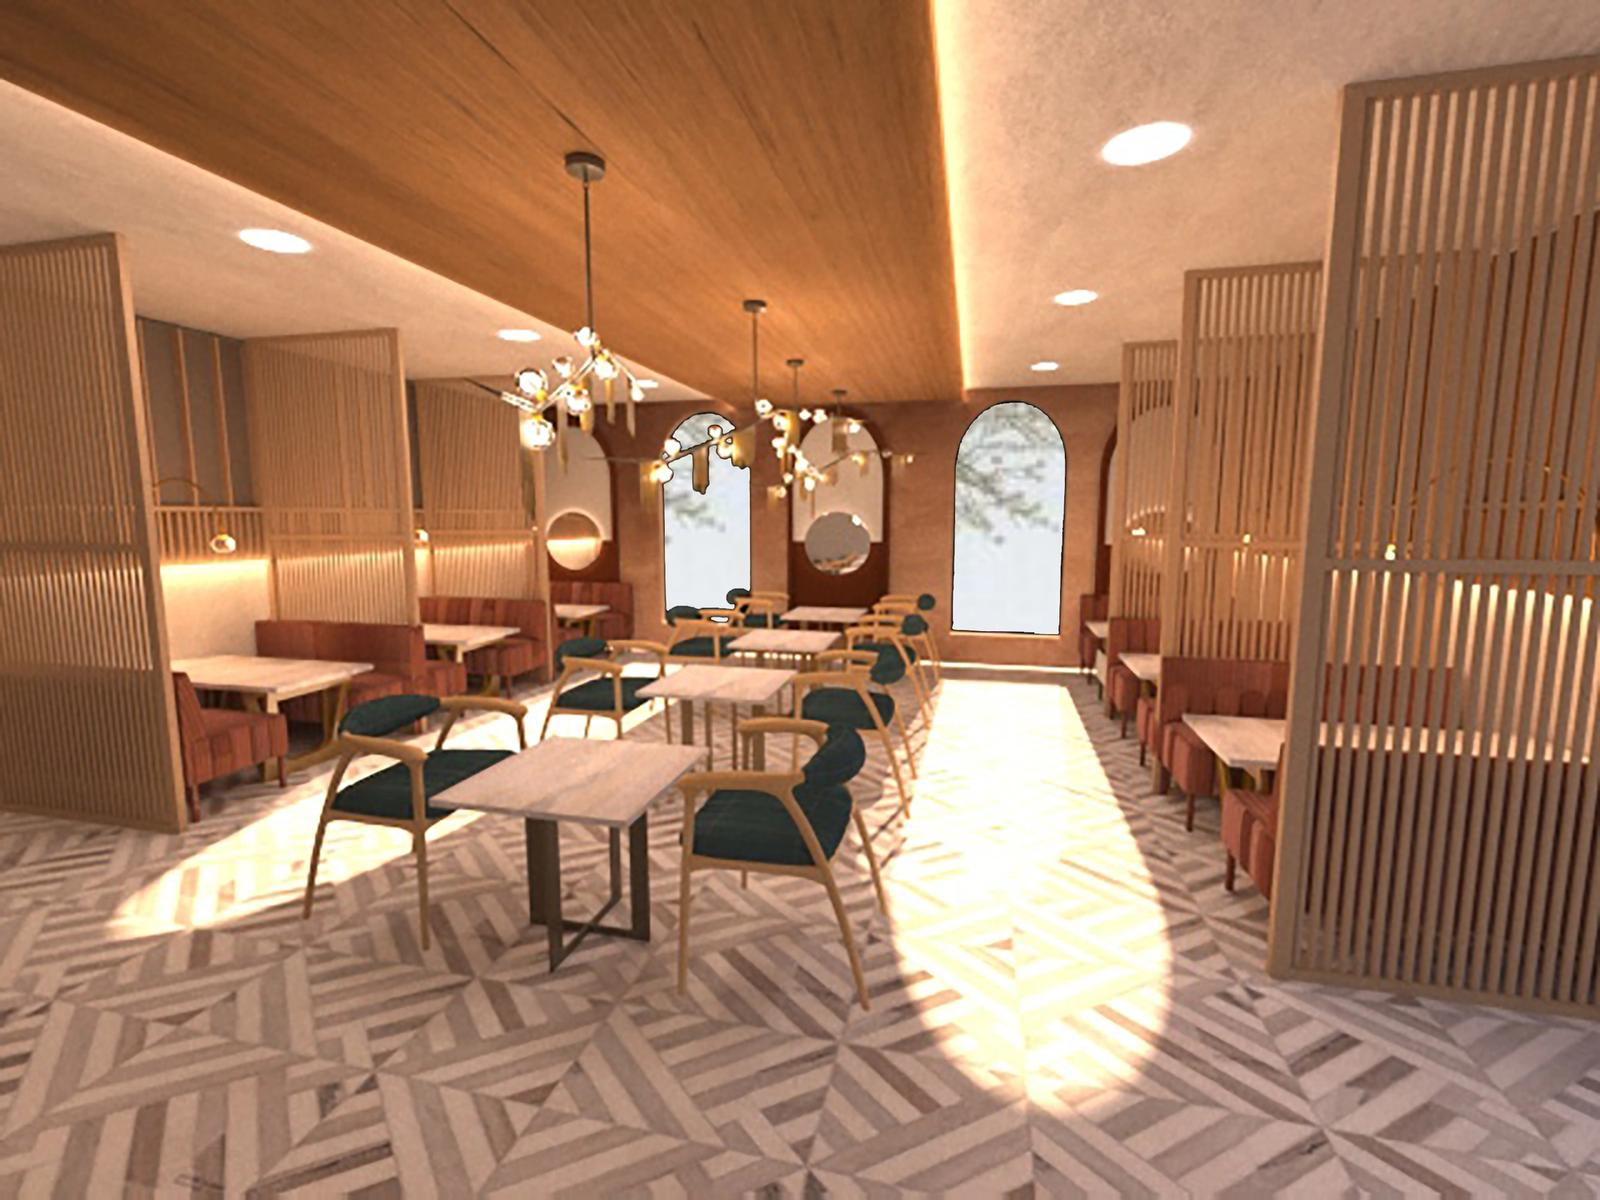 Raw Luminaire - Booth Seating Area 2